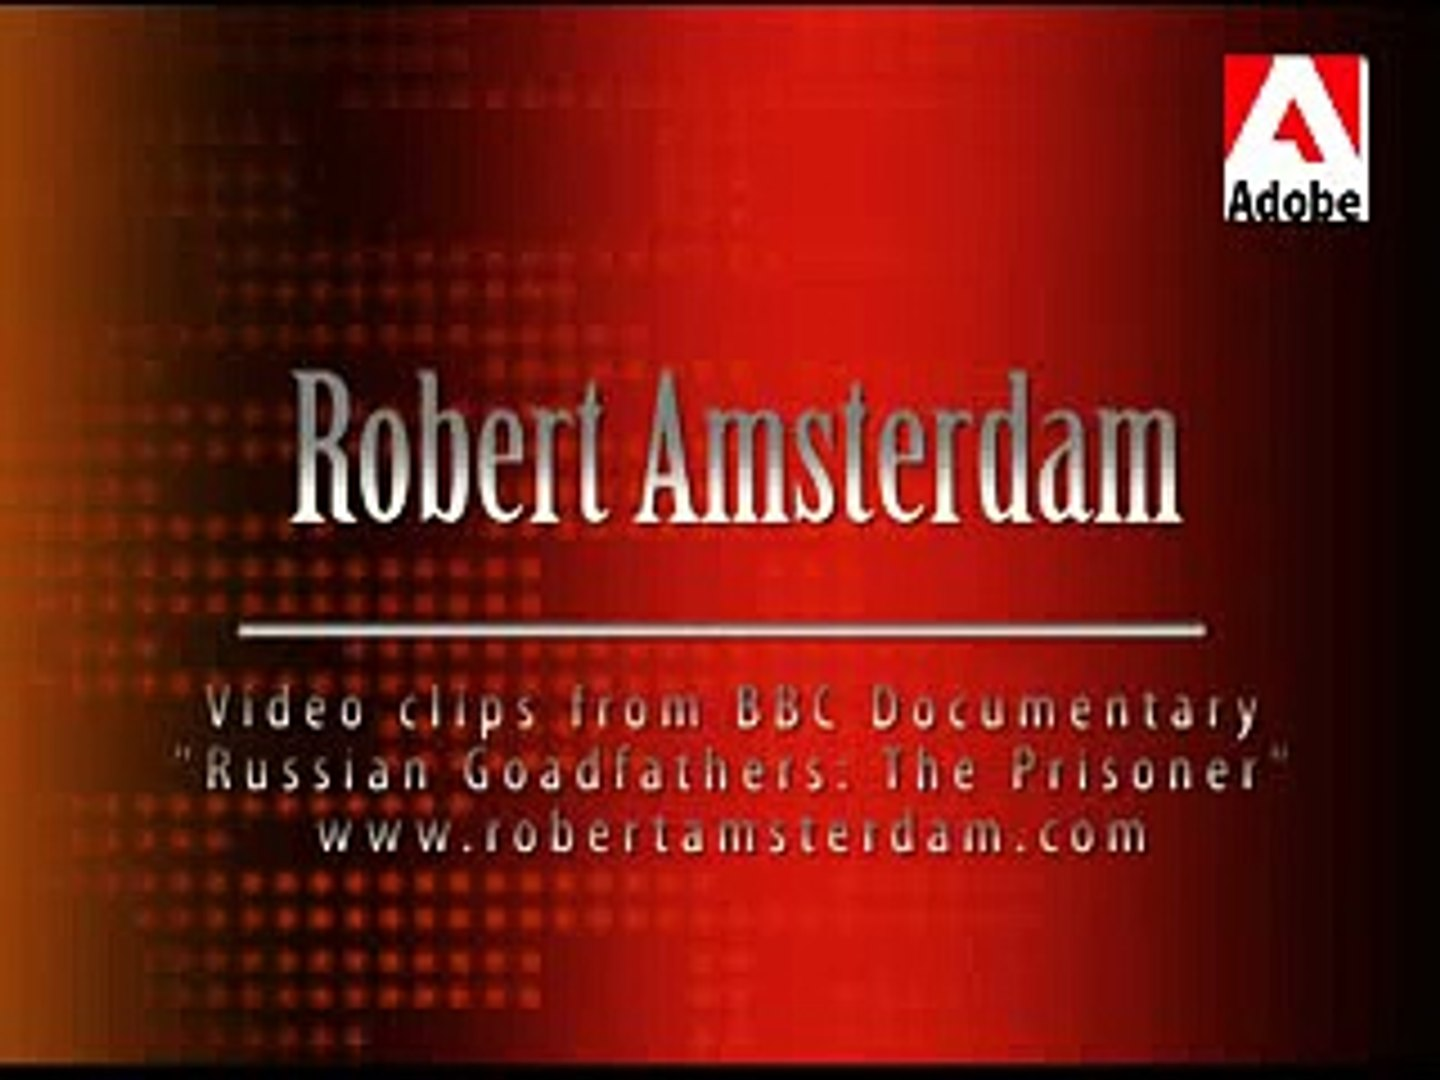 Robert Amsterdam in the BBC's Russian Godfathers Documentary